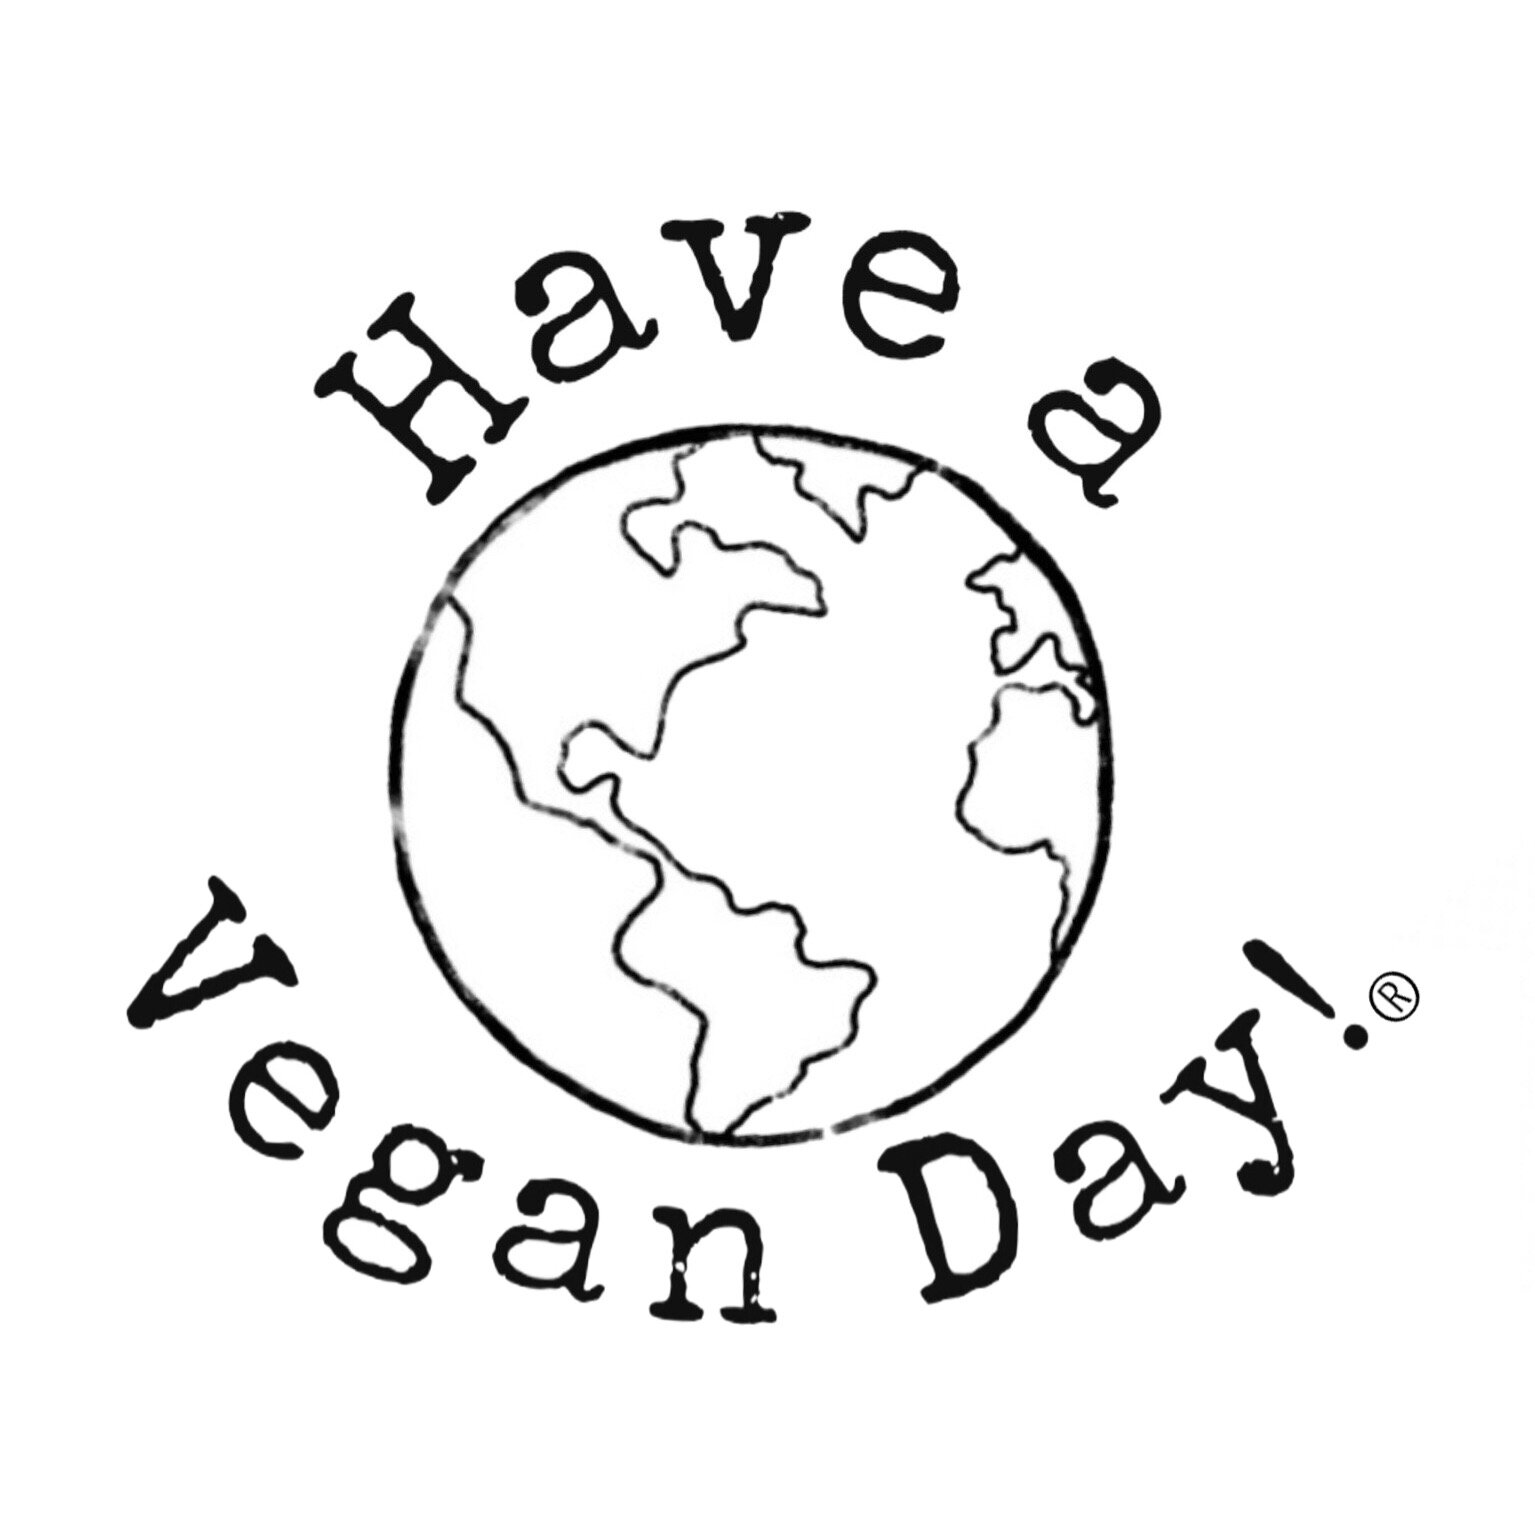 Have a Vegan Day!